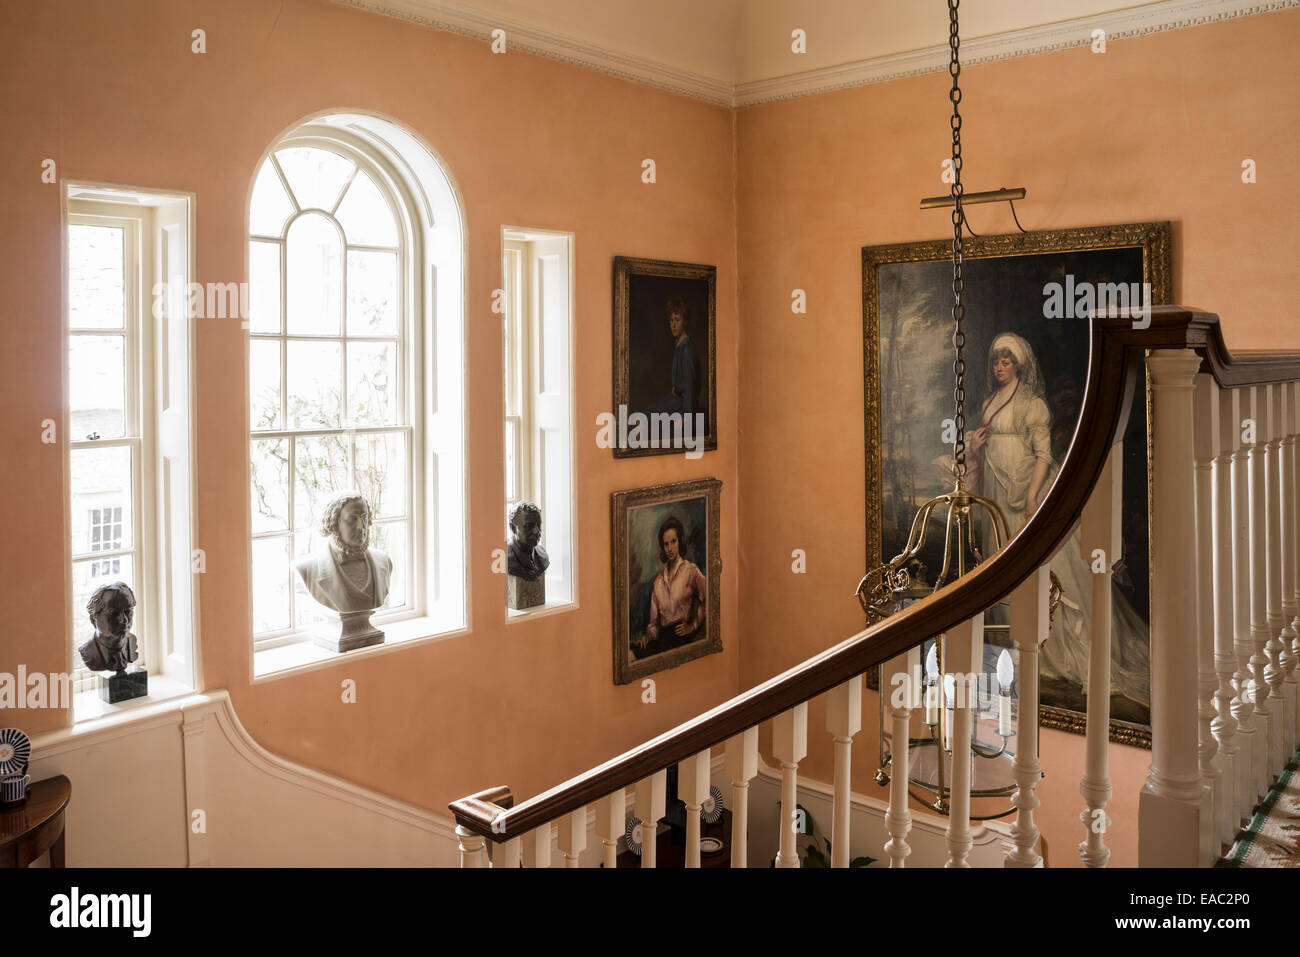 Portraits and busts look down onto stairwell with banister - Stock Image